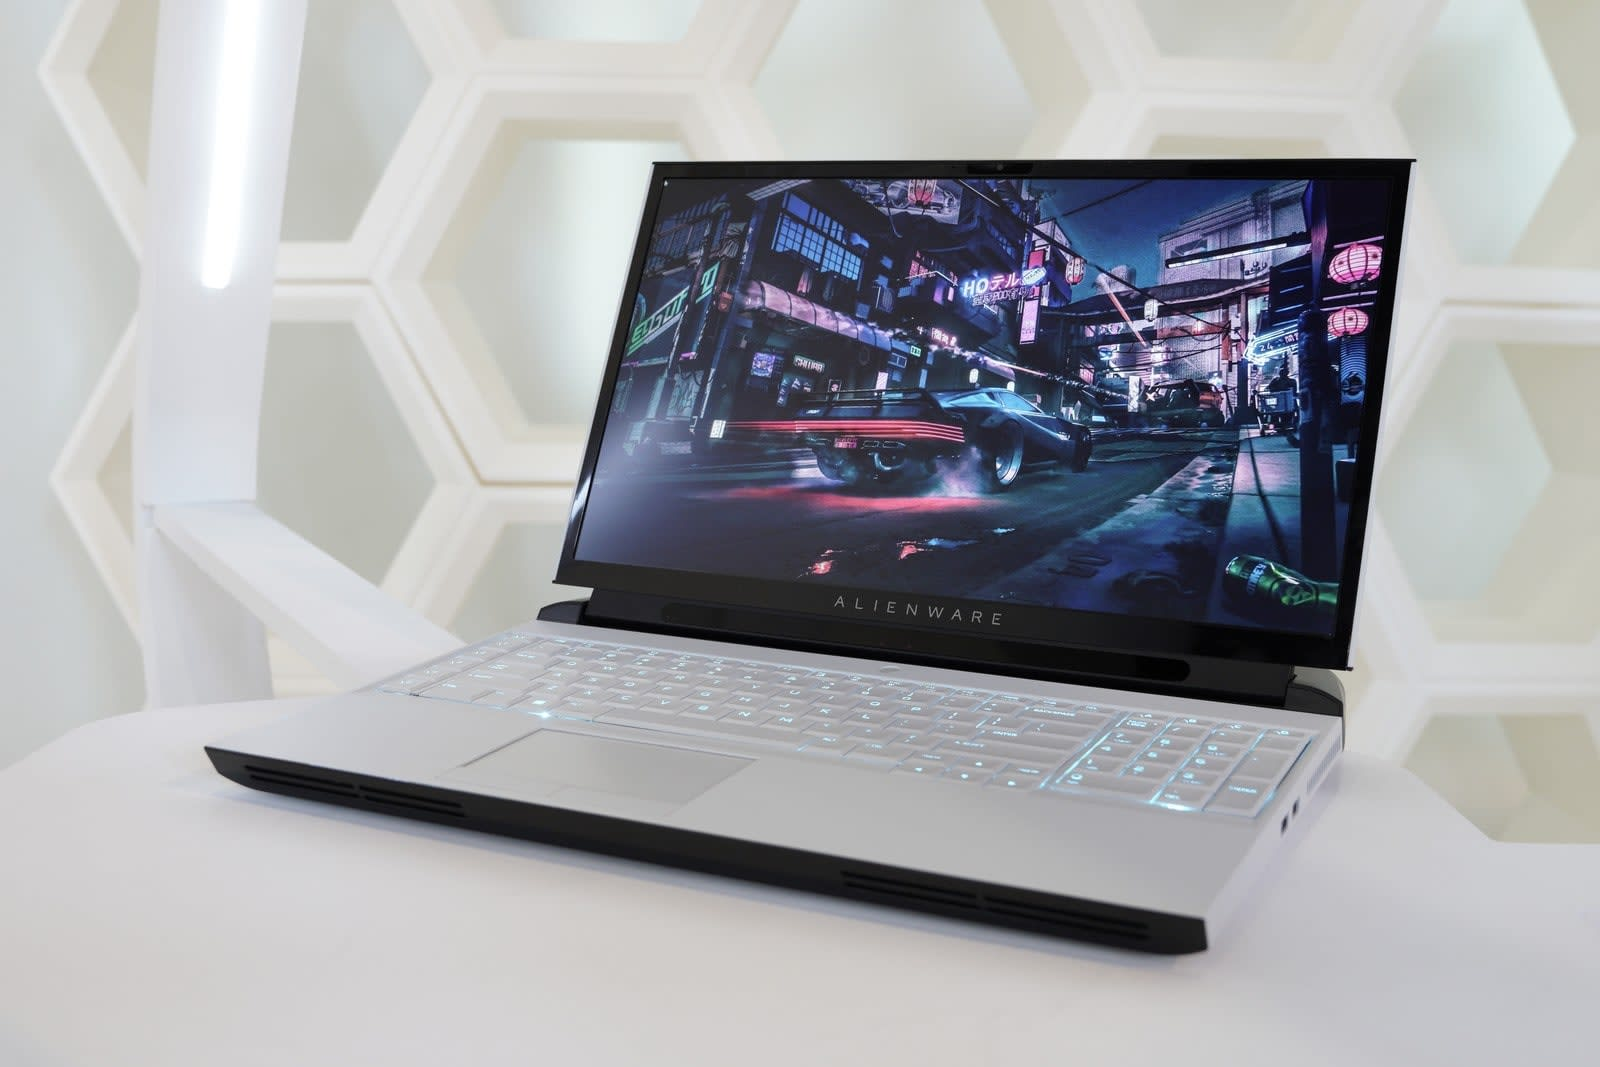 Alienware's Area 51m laptop has an upgradable CPU and